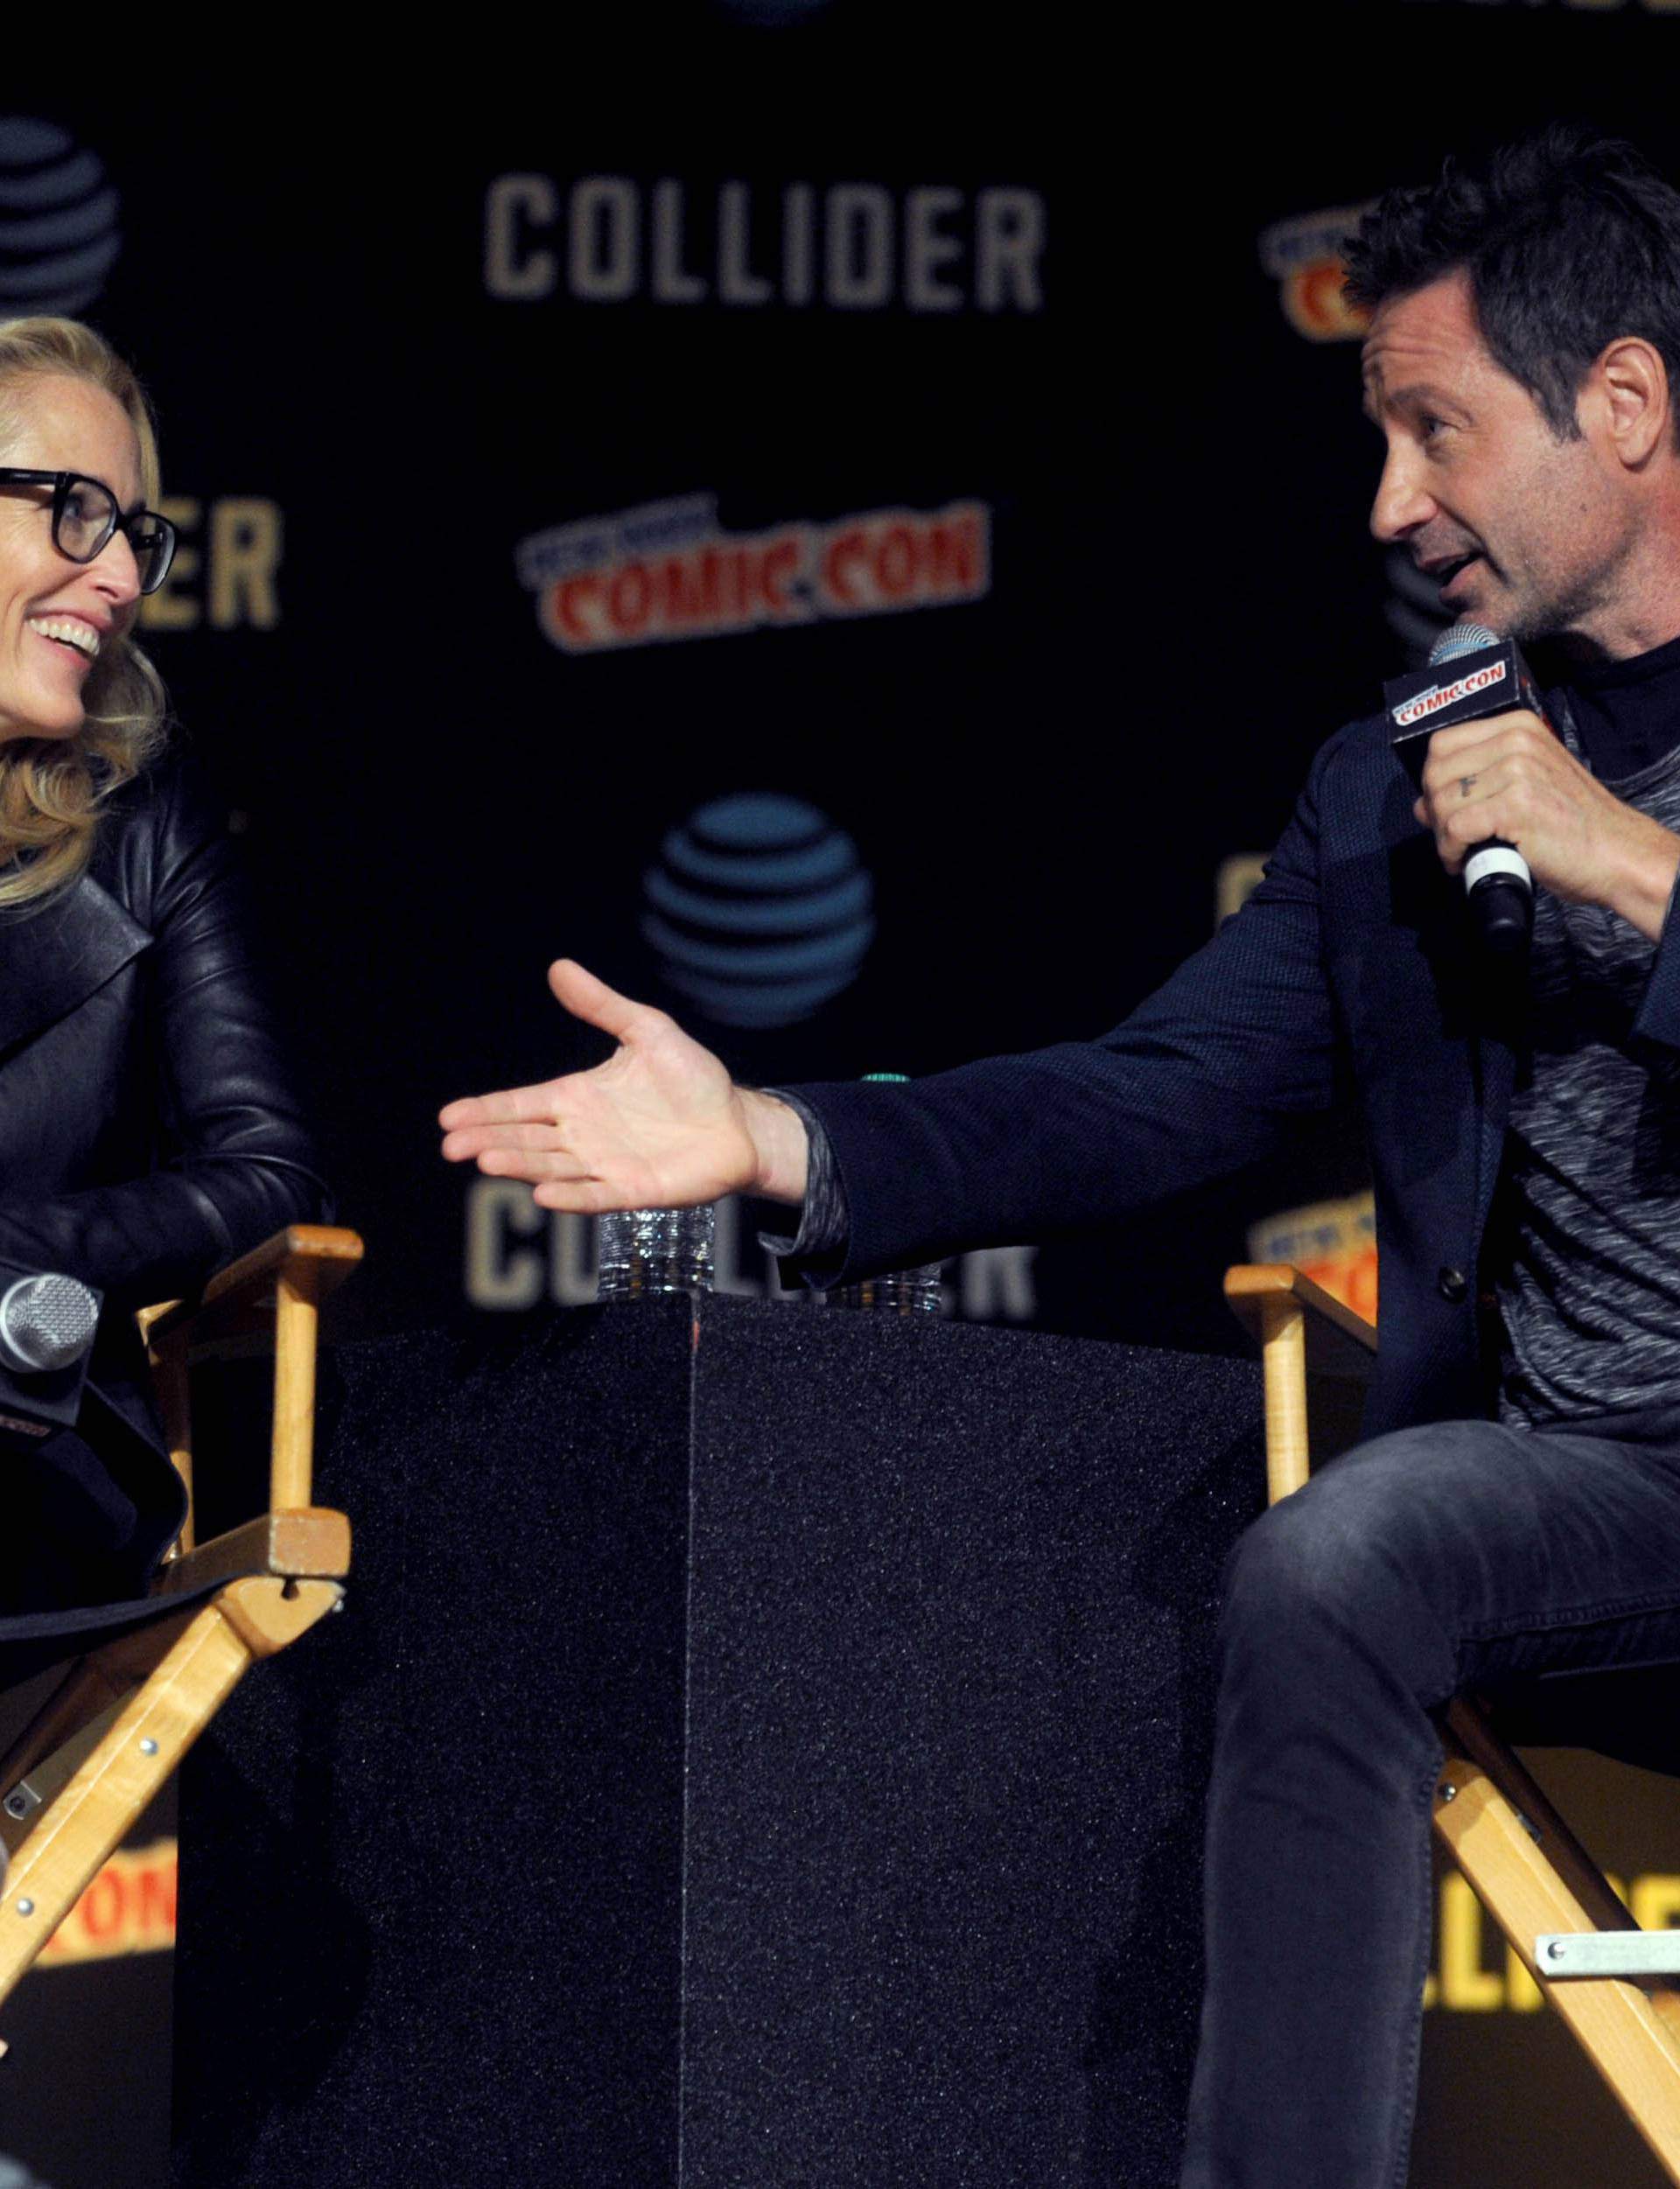 New York Comic Con - X-Files Panel - NYC